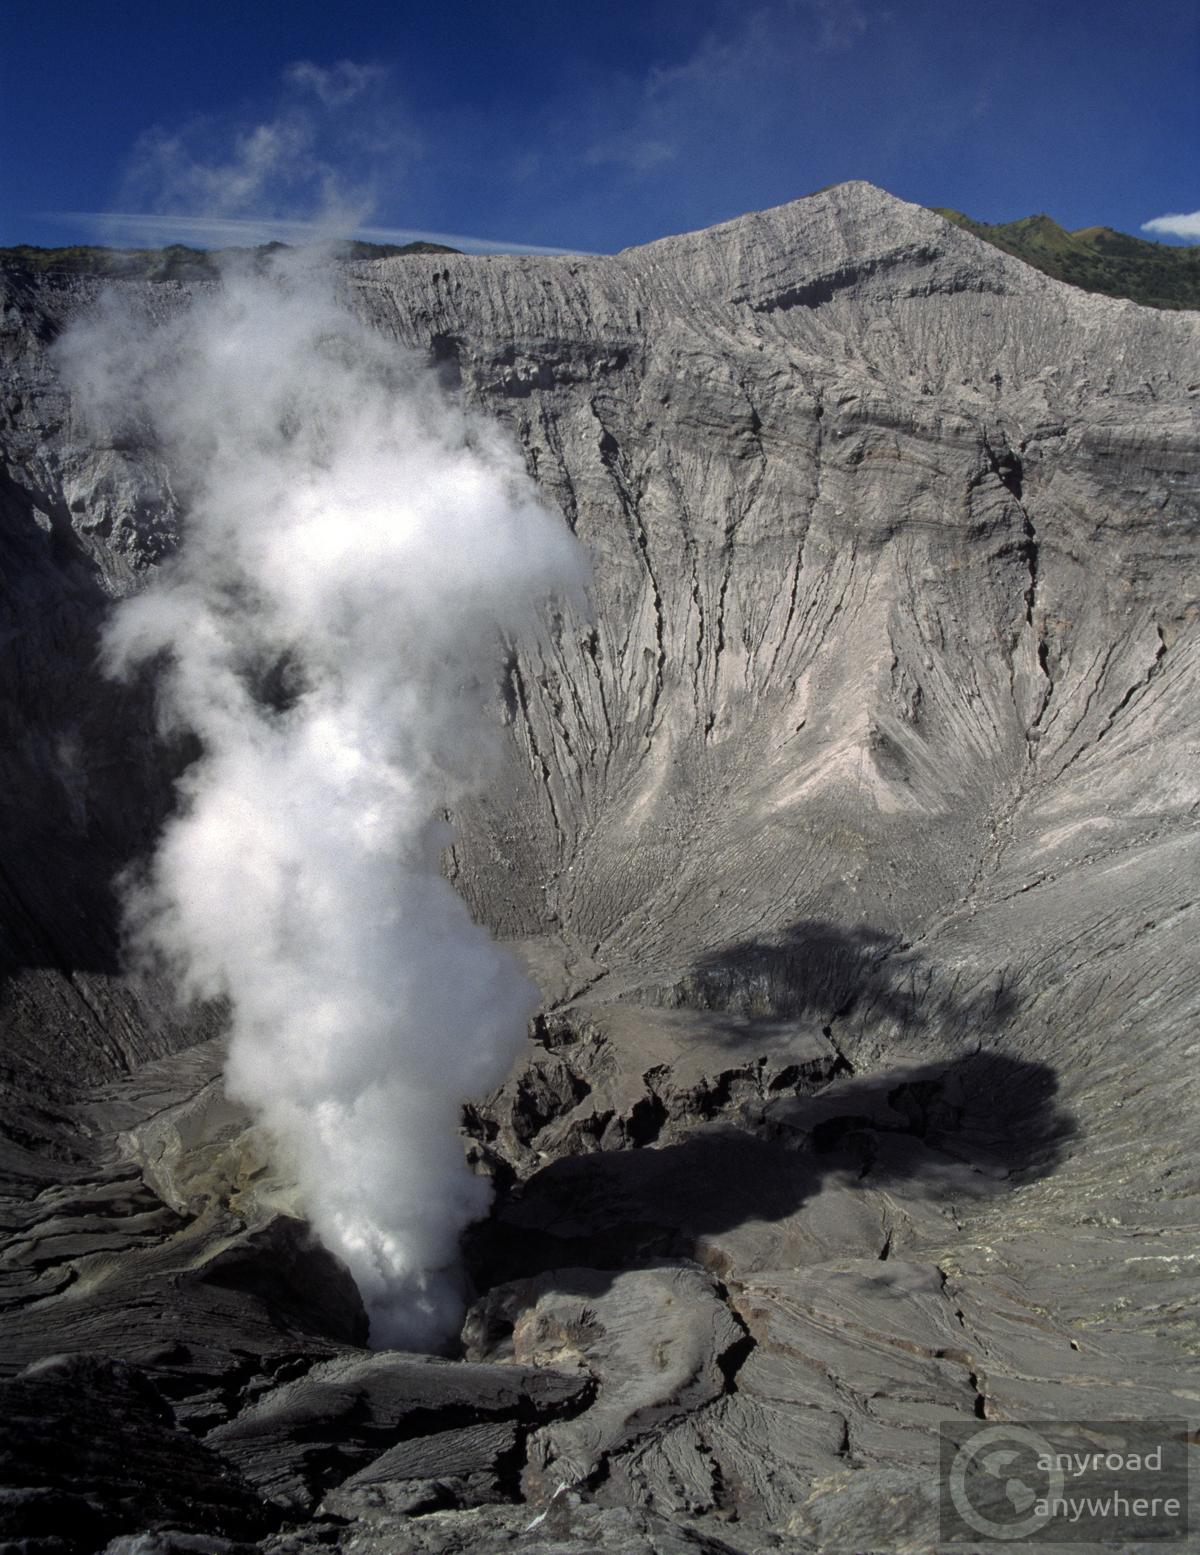 The crater of the young volcano